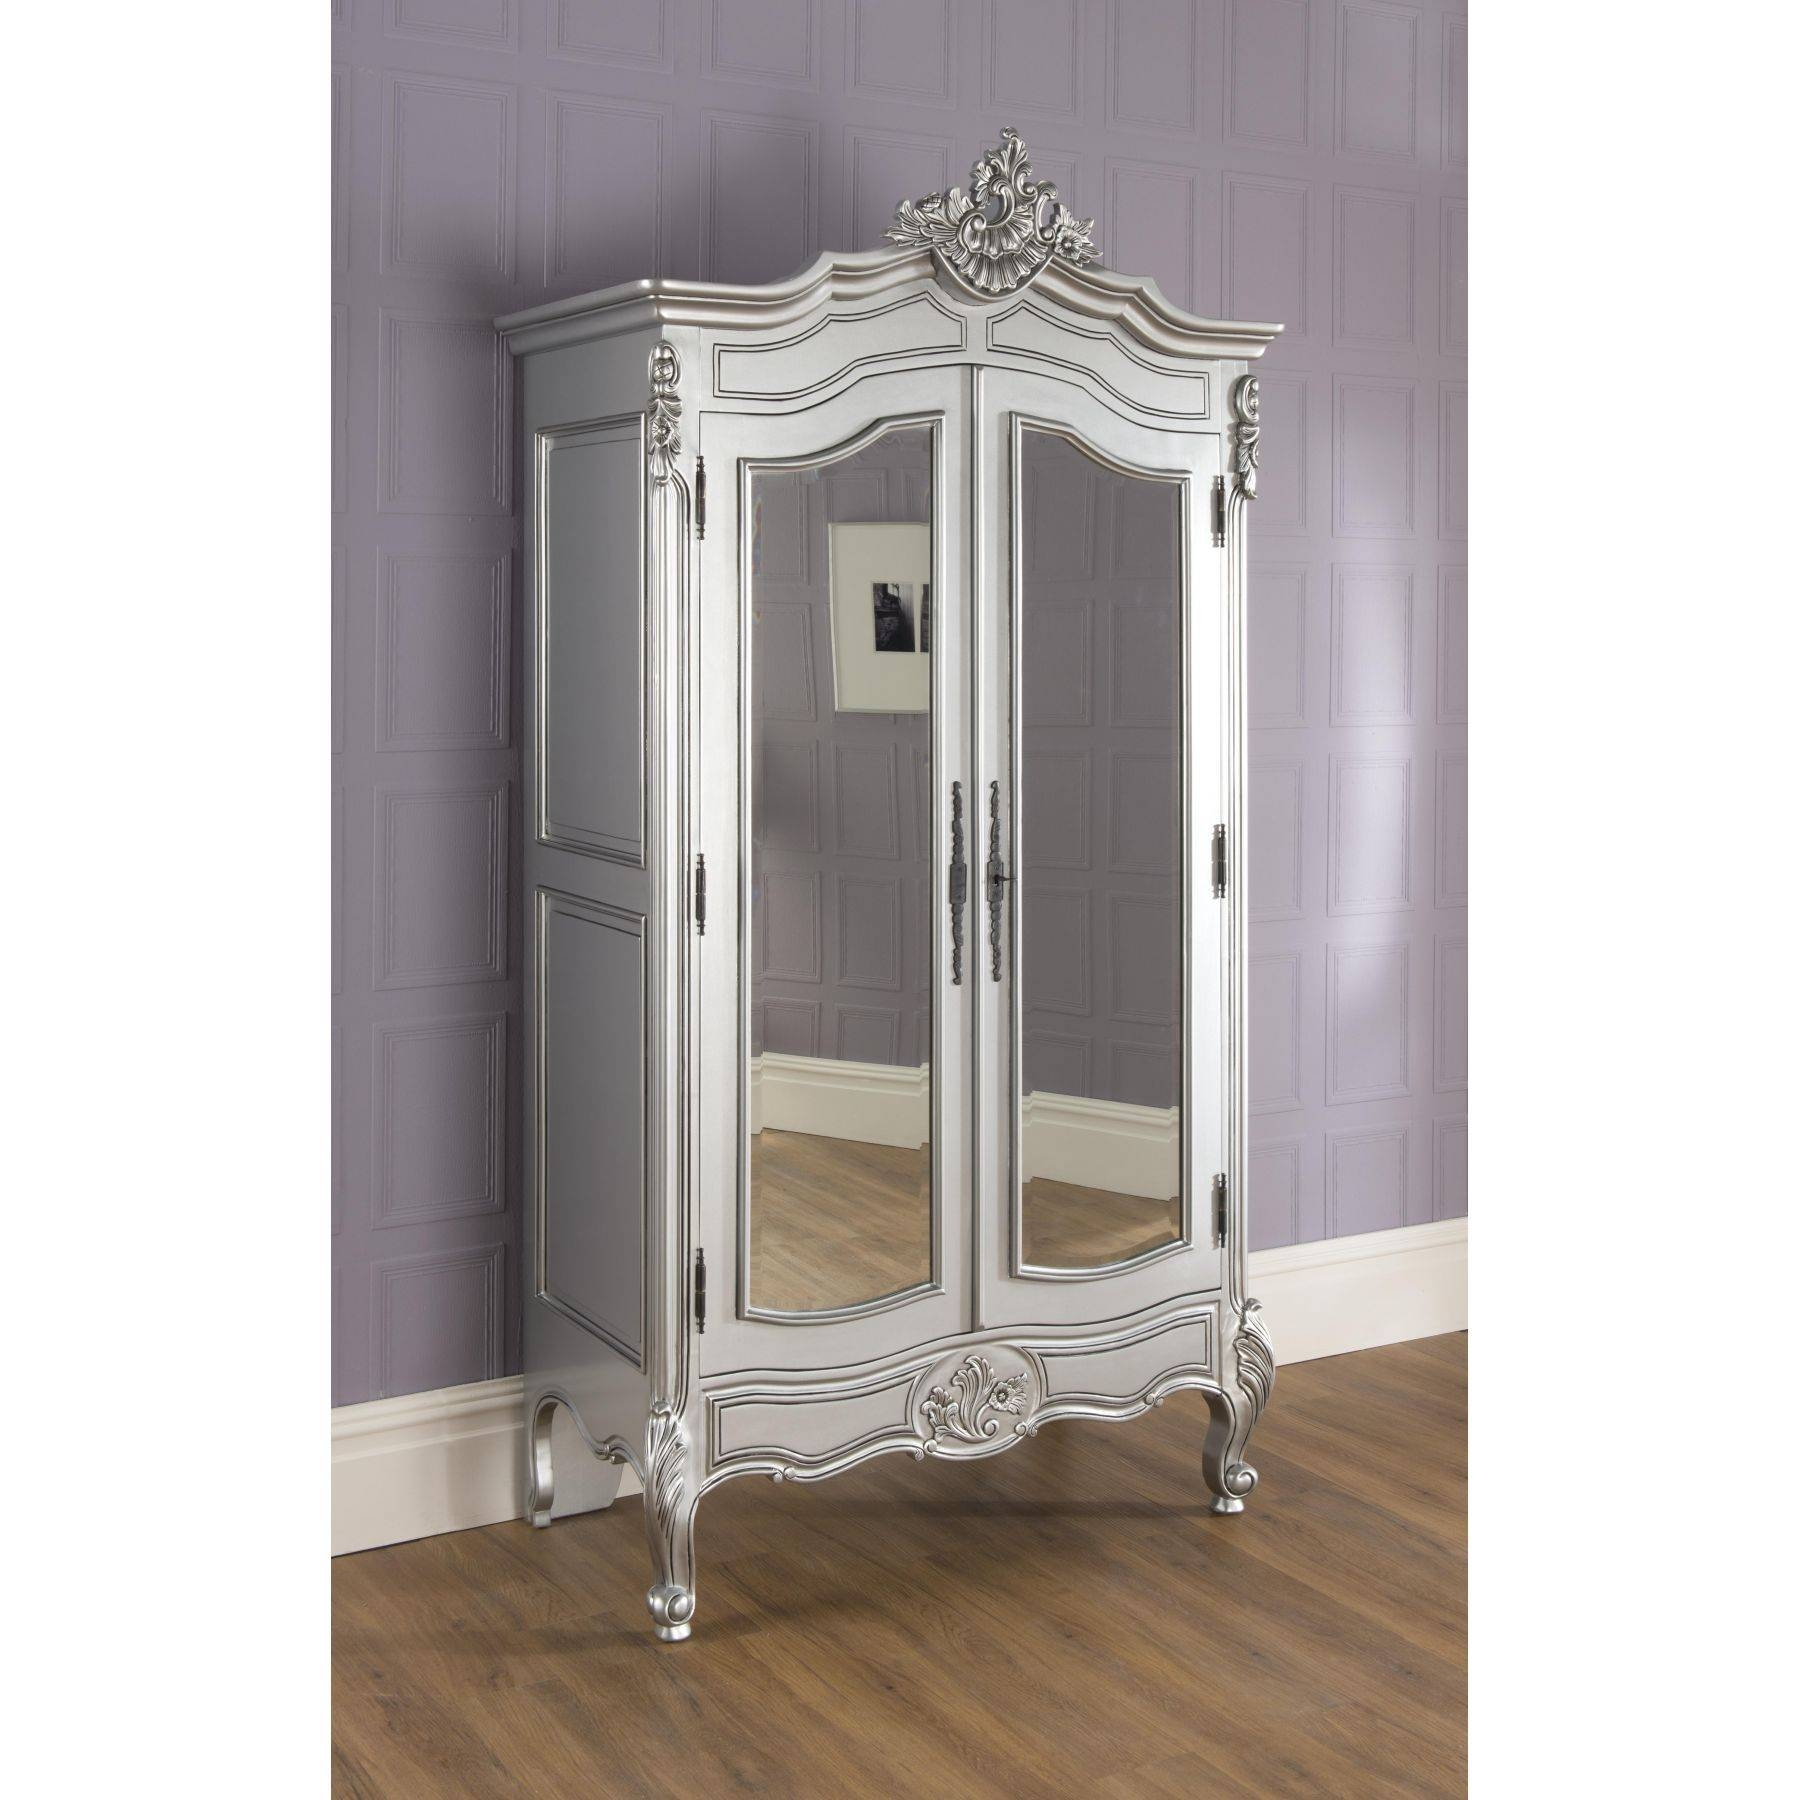 Rochelle Silver Bundle Deal #13 pertaining to Shabby Chic Wardrobes For Sale (Image 11 of 15)